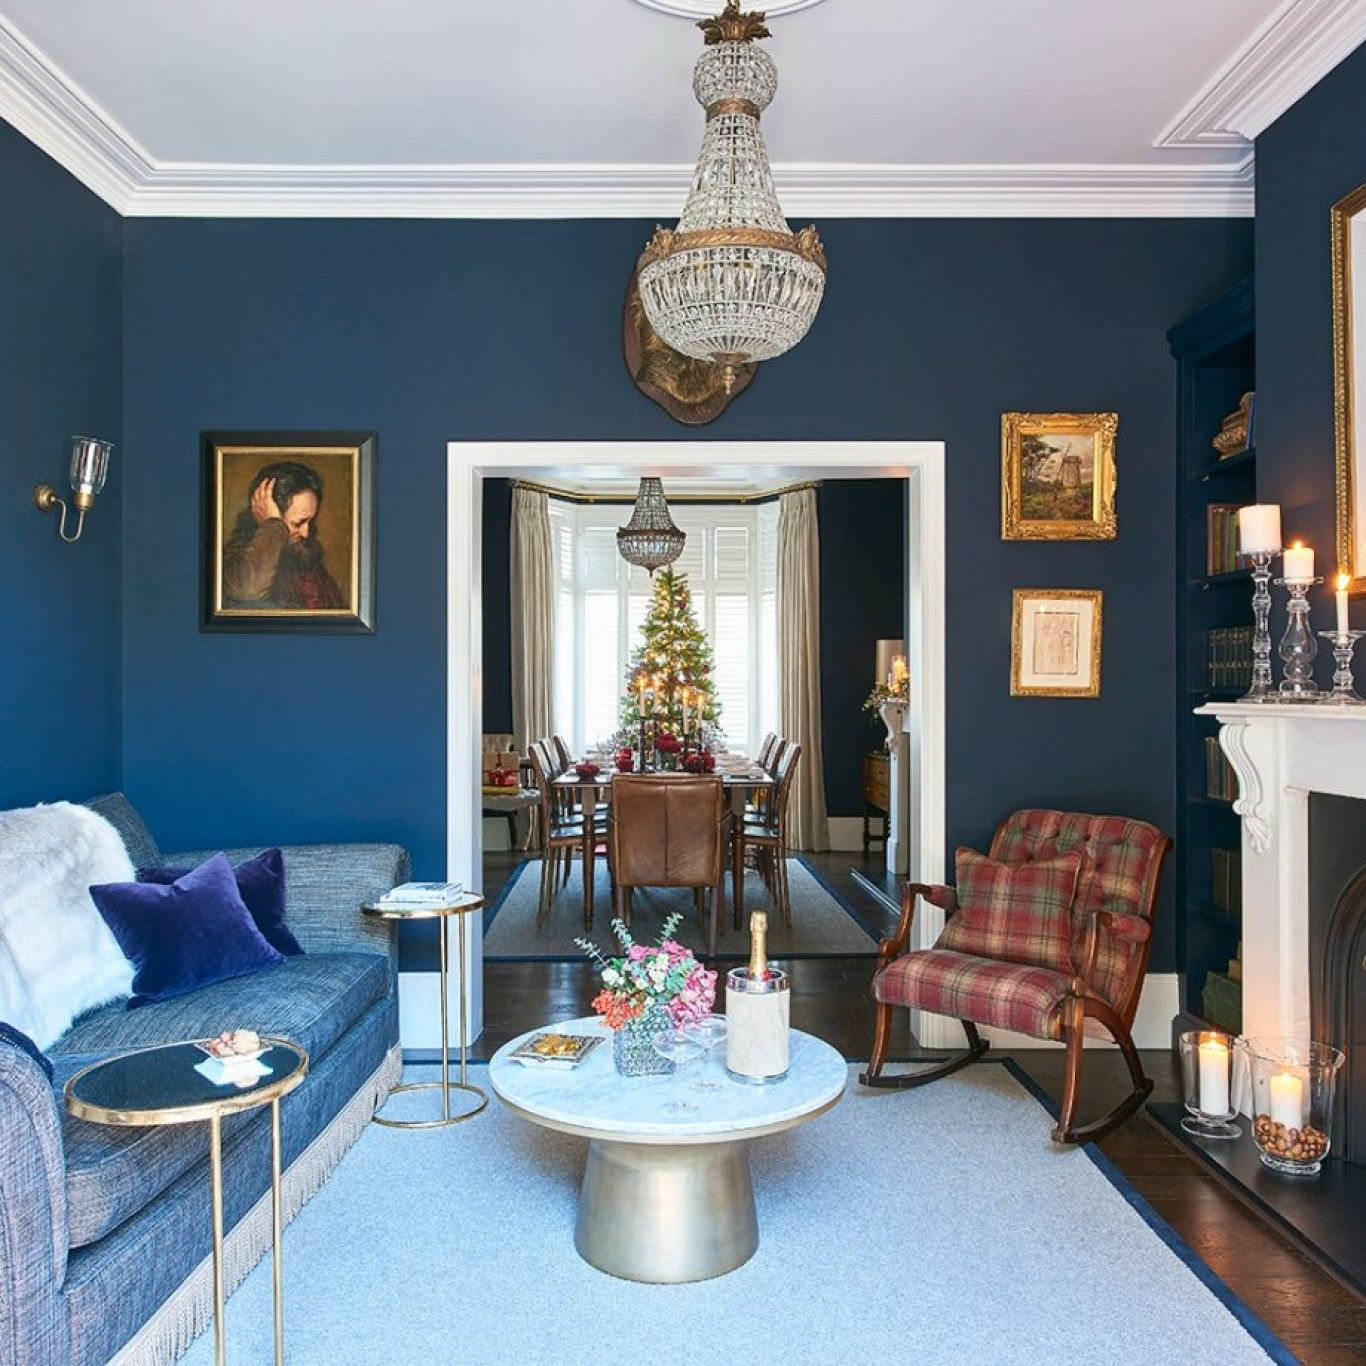 Pin by Jason Mais on Queens Acre | Living room color ...